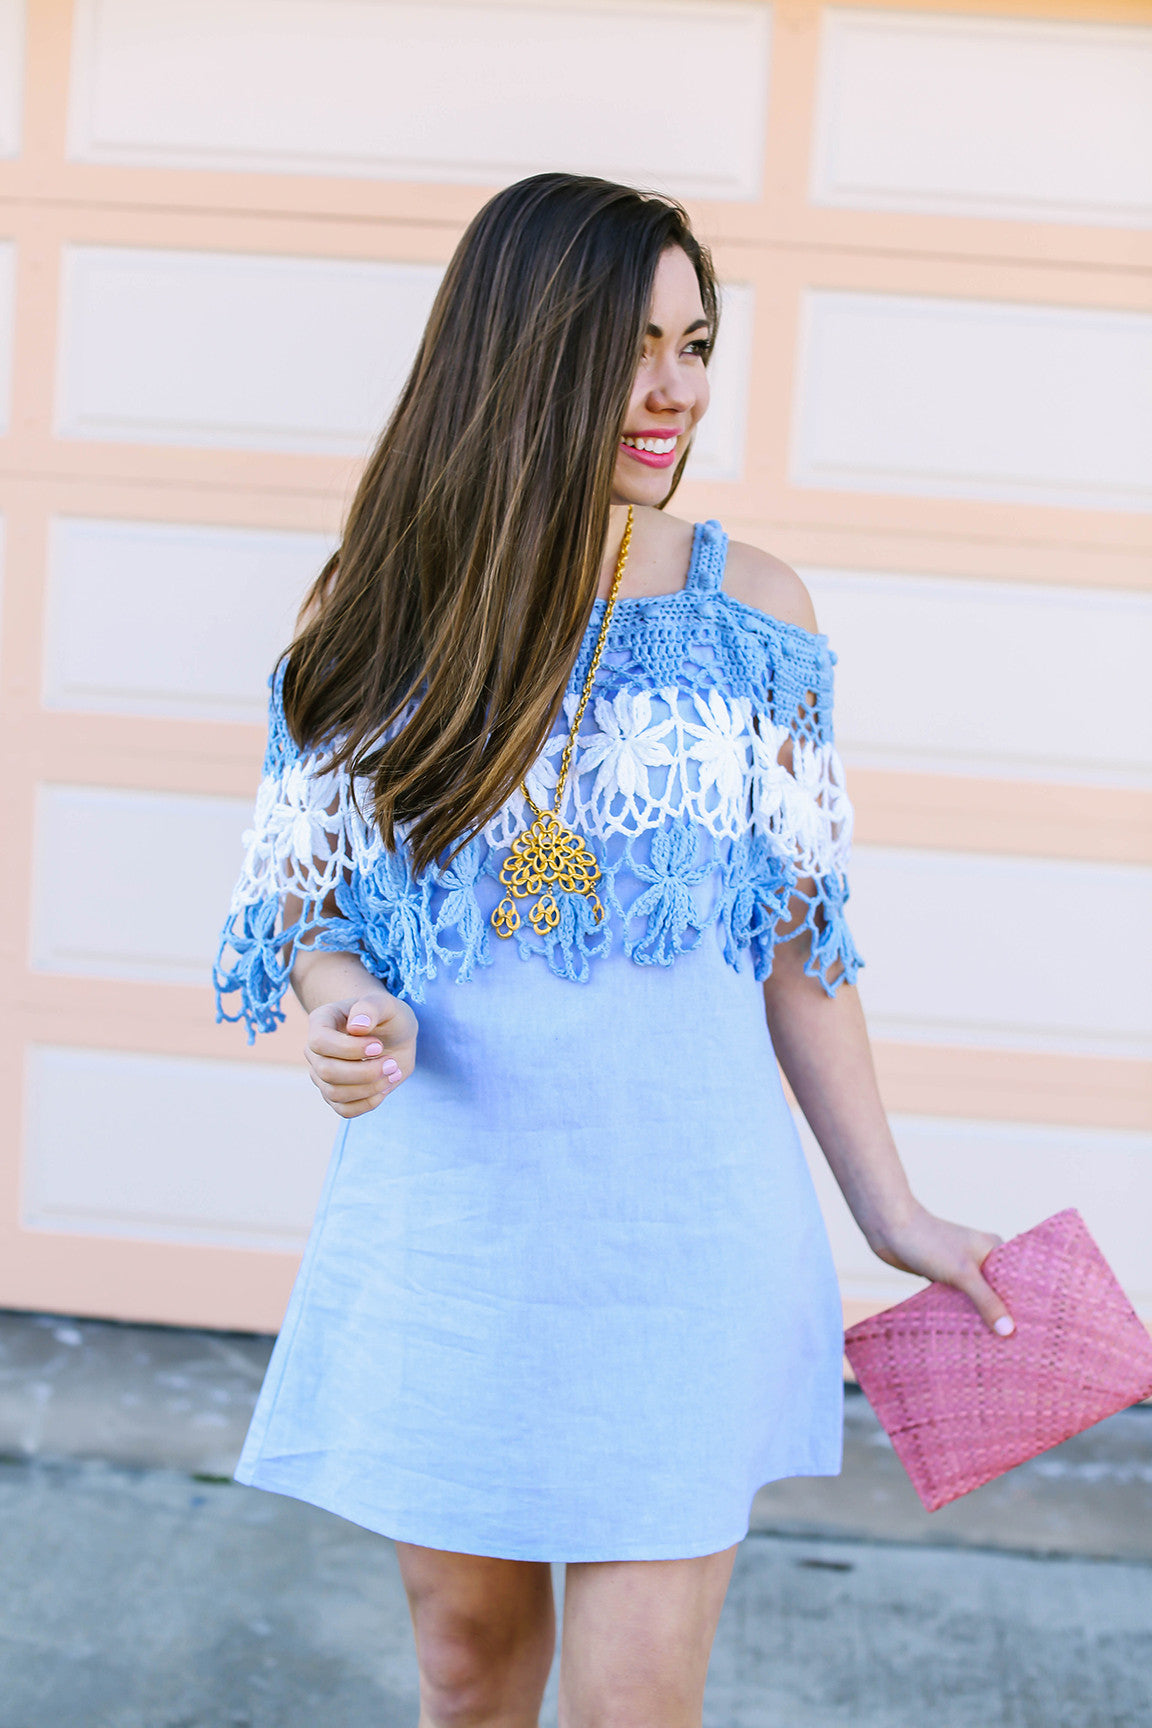 Off shoulder dress and boho pendant necklace